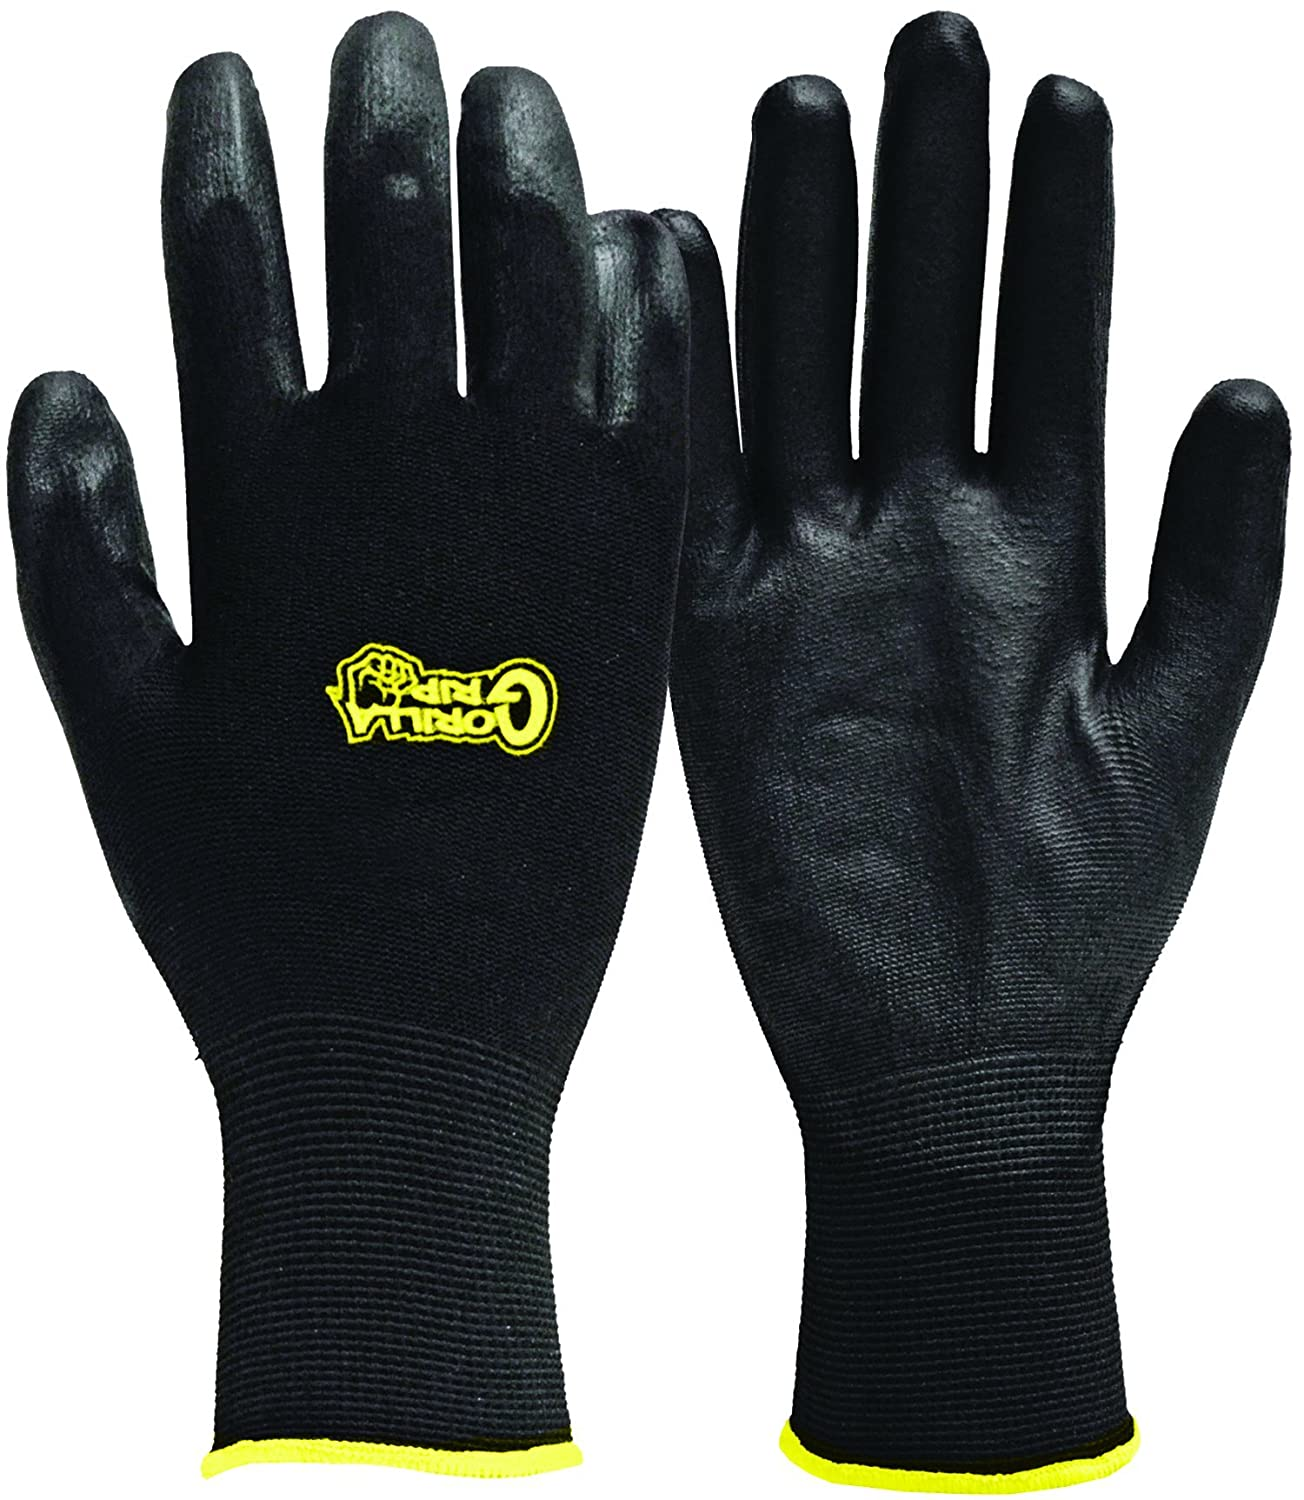 '47 Big Time Products Grease Monkey Gorilla Grip Gloves (Medium) 25052-26